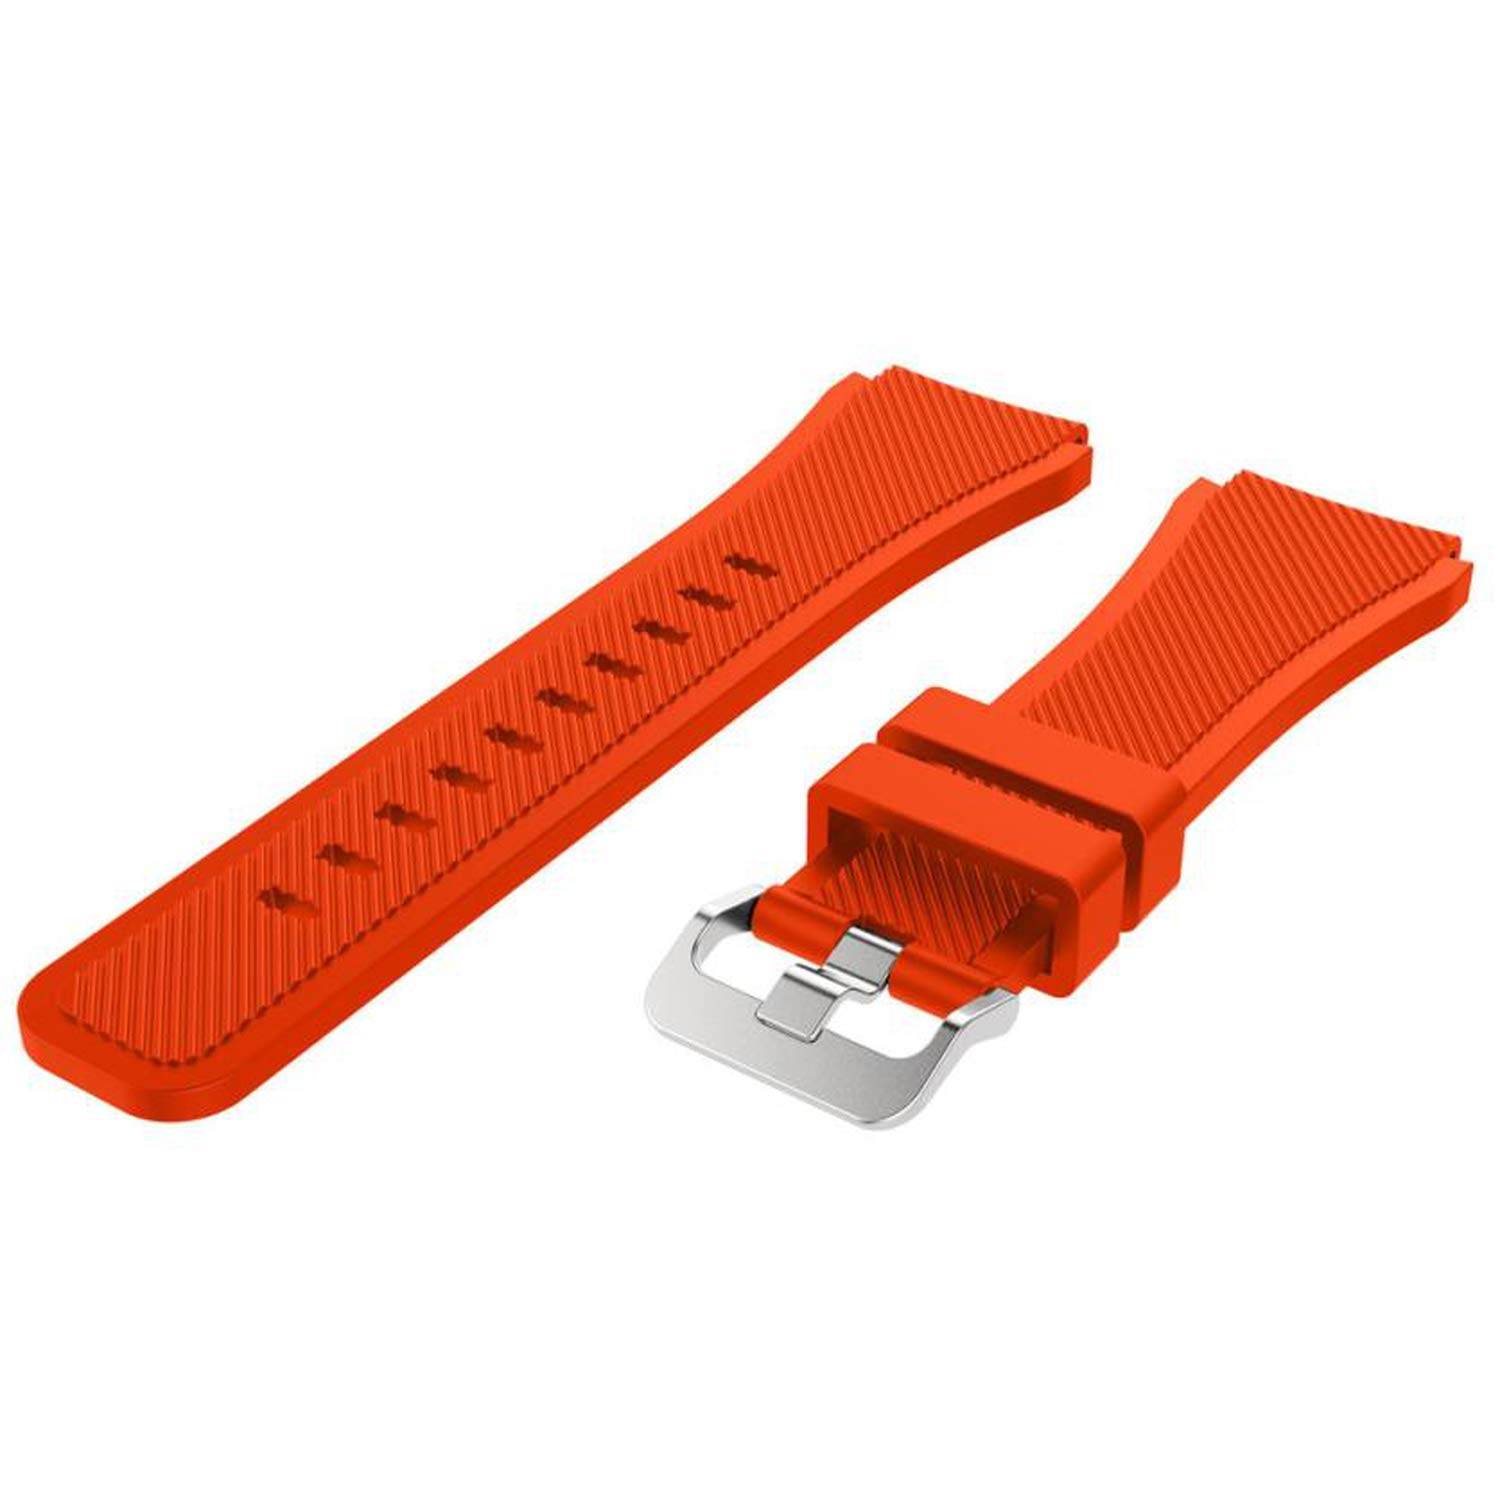 Sonjer 22Mm Watchbands for Samsung Gear for S3 Top Luxury Silicone Watch Strap for Watches Gift,United States,Orange,22Mm